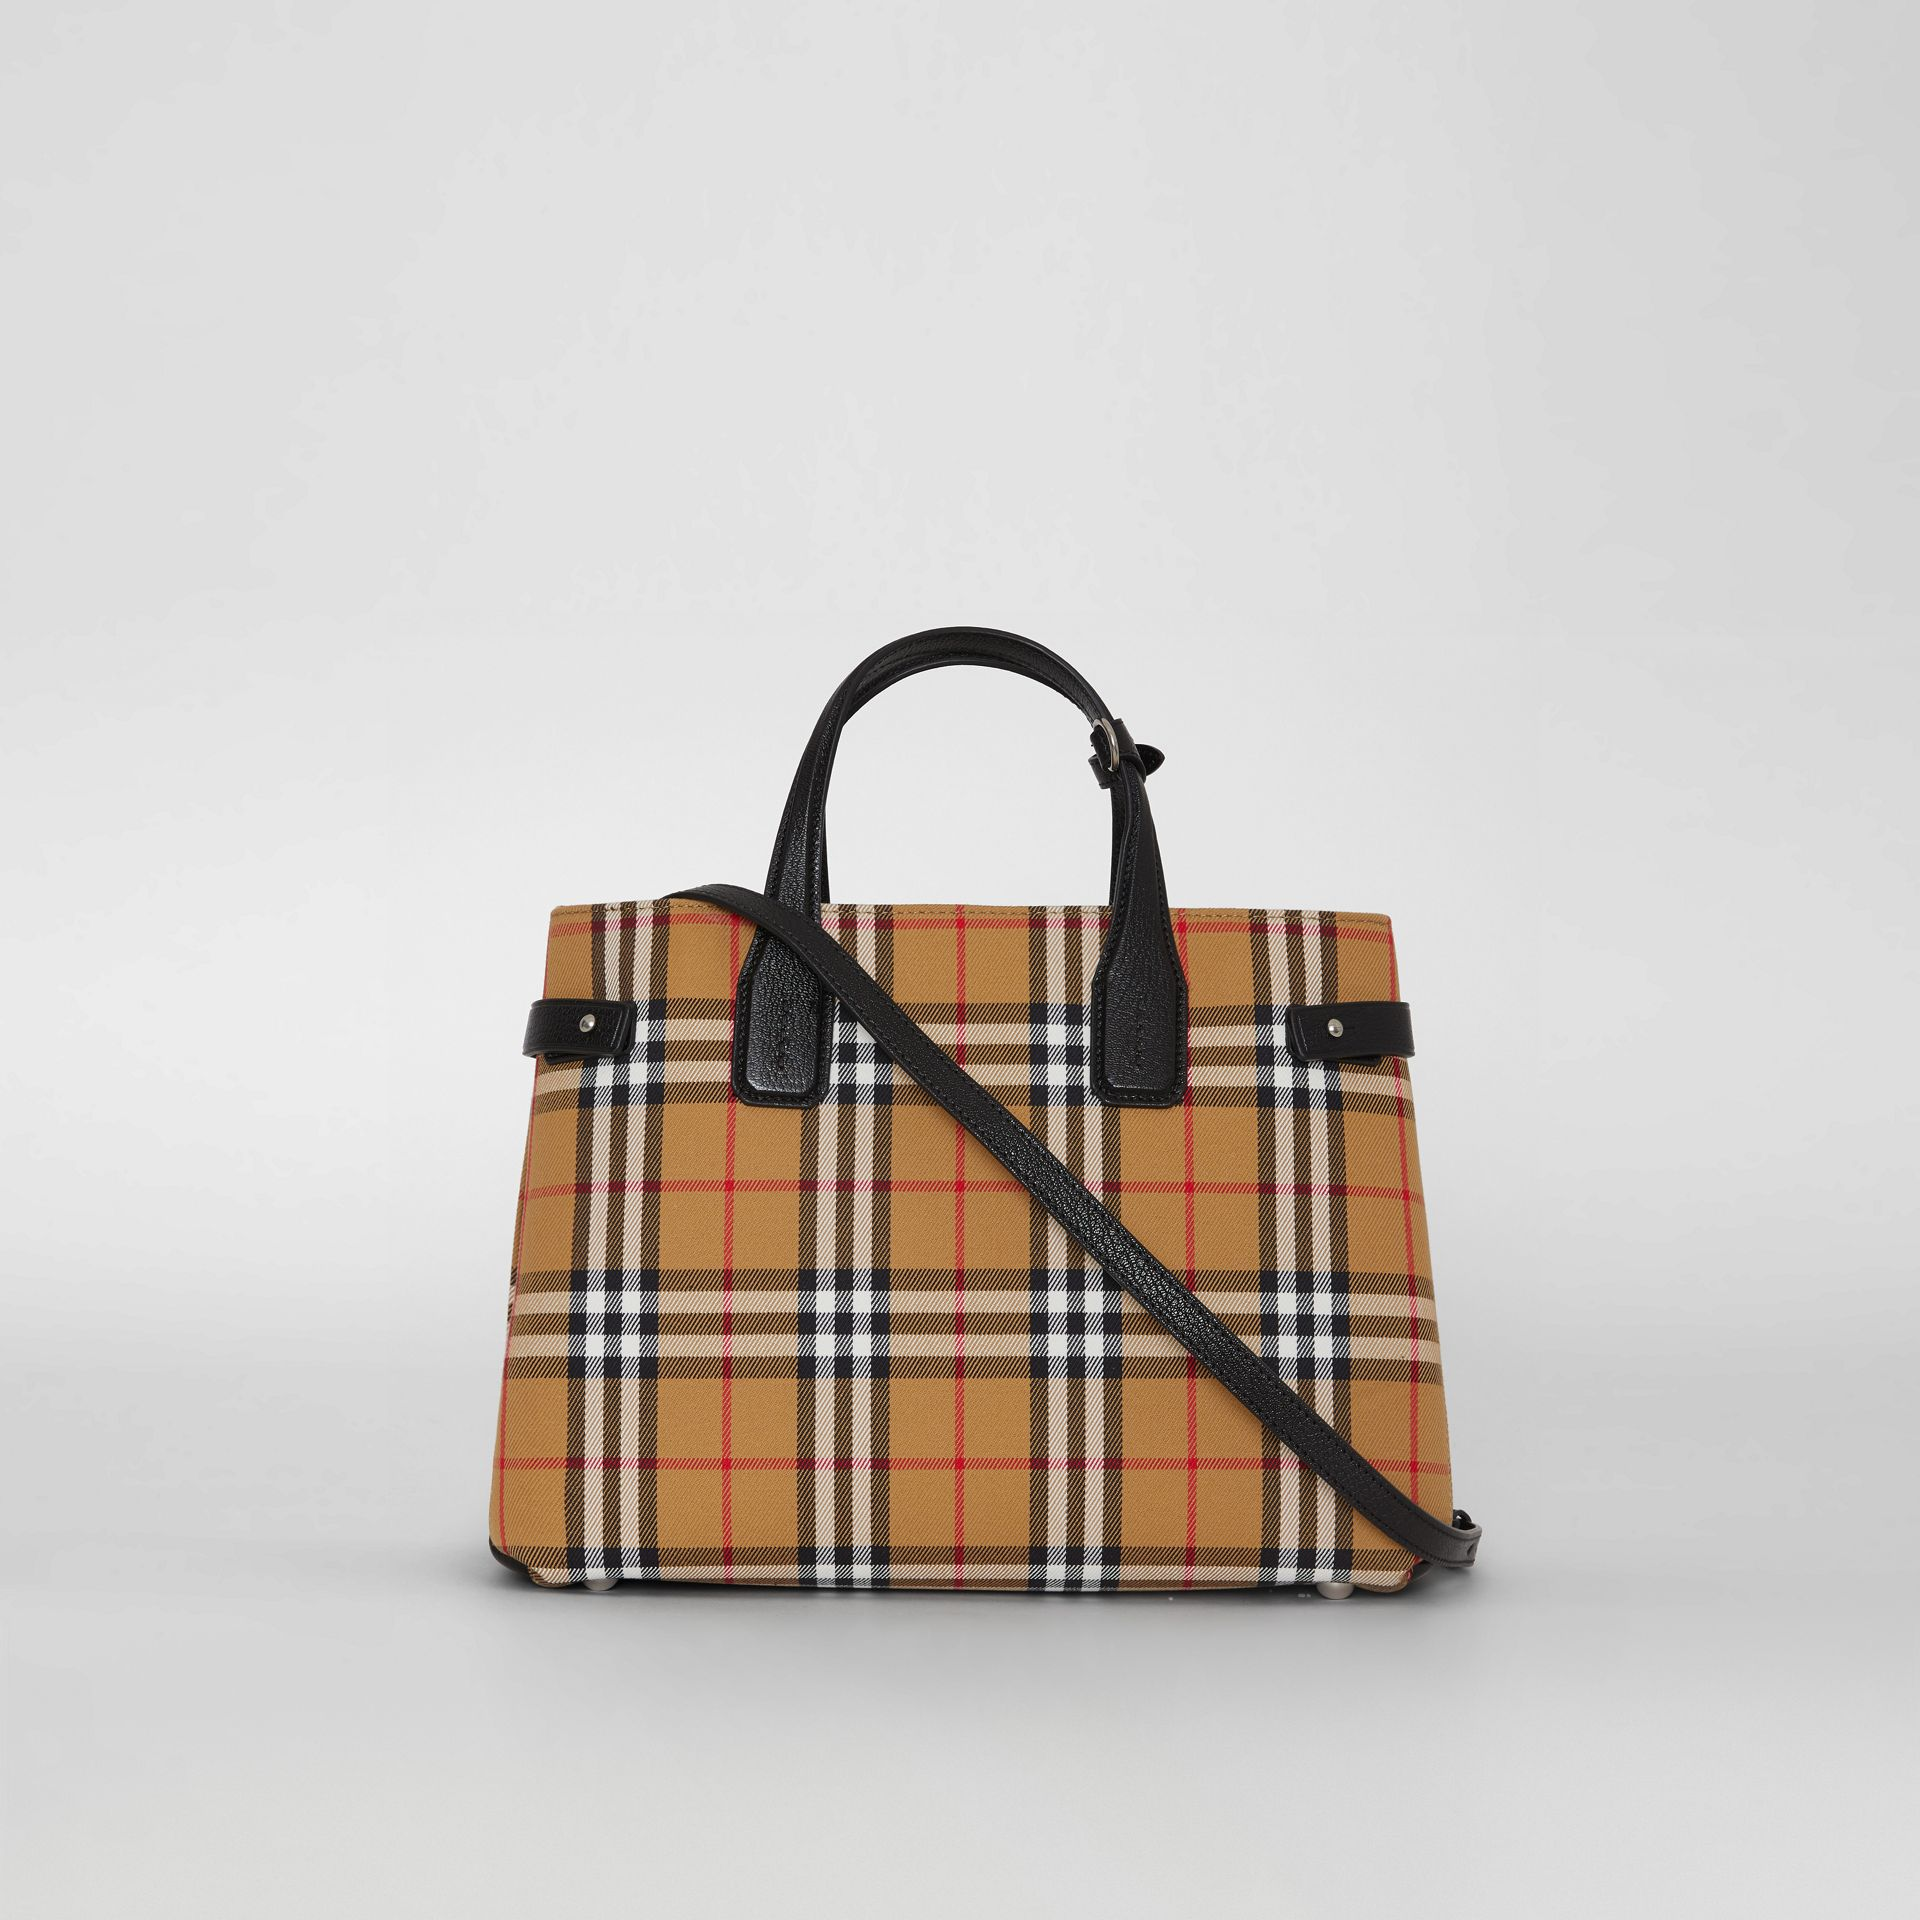 Sac The Banner moyen en cuir et Vintage check (Noir) - Femme | Burberry Canada - photo de la galerie 7